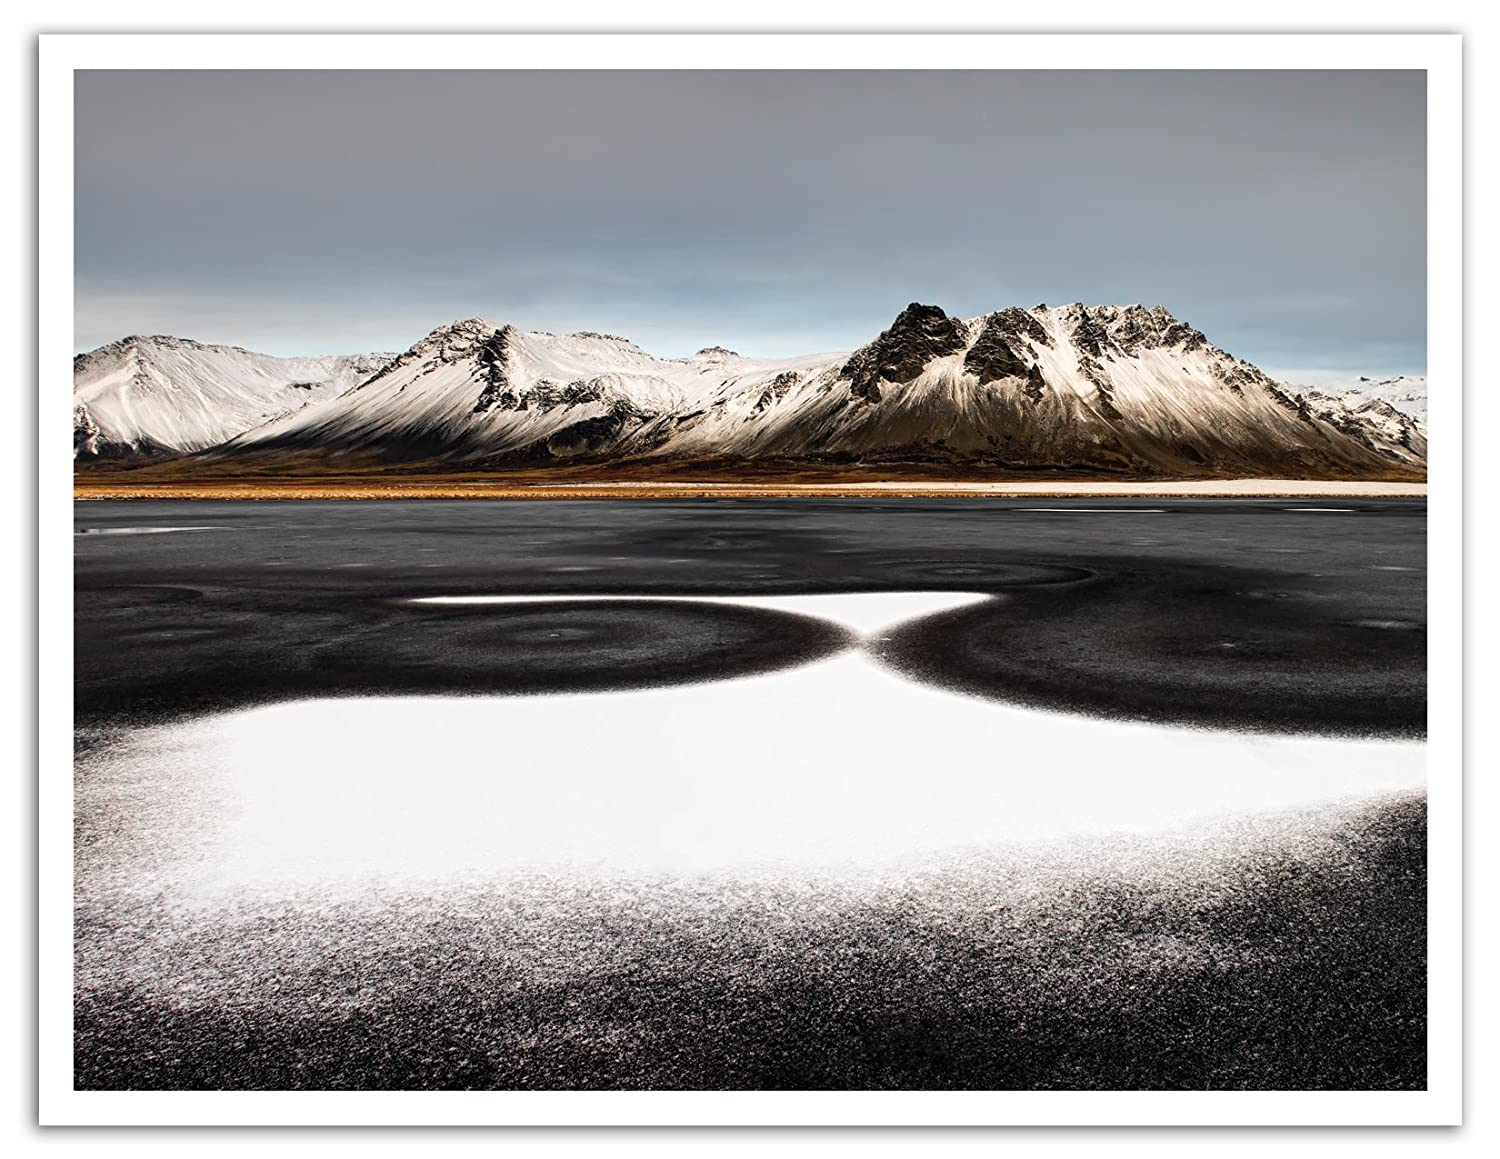 JP London POS1X762632 Jpl and Liloni Luca Present Iceland First Snow Mounta Range Peaks 25.75 by 19.75 Peel and Stick Fully Removable Wall Poster Mural